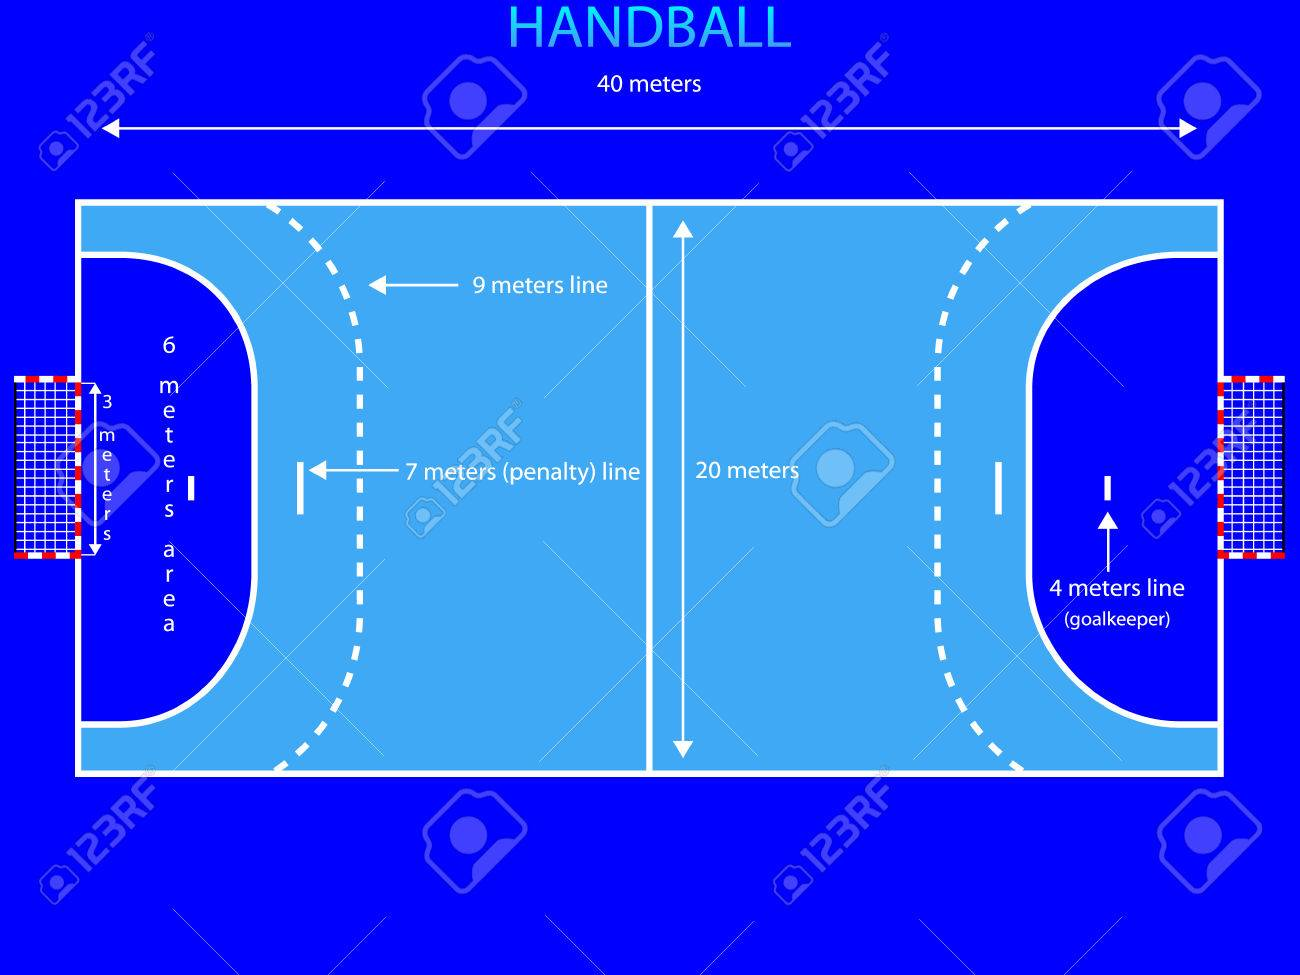 Handball Court With Metric Dimensions In Separate Layer Royalty Free Cliparts Vectors And Stock Illustration Image 28994376